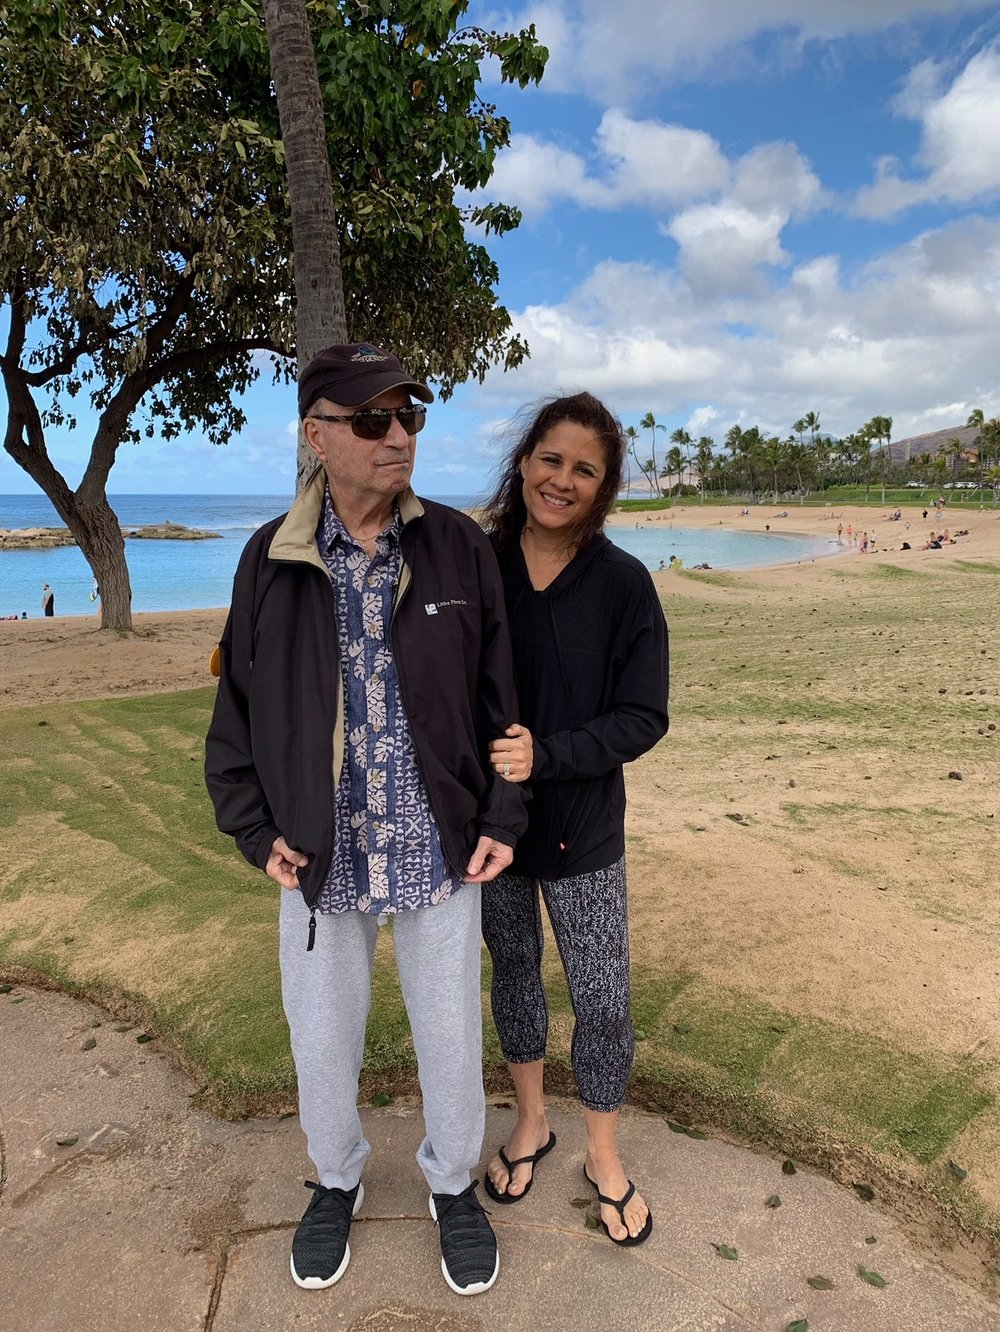 Dad and I at Koolina